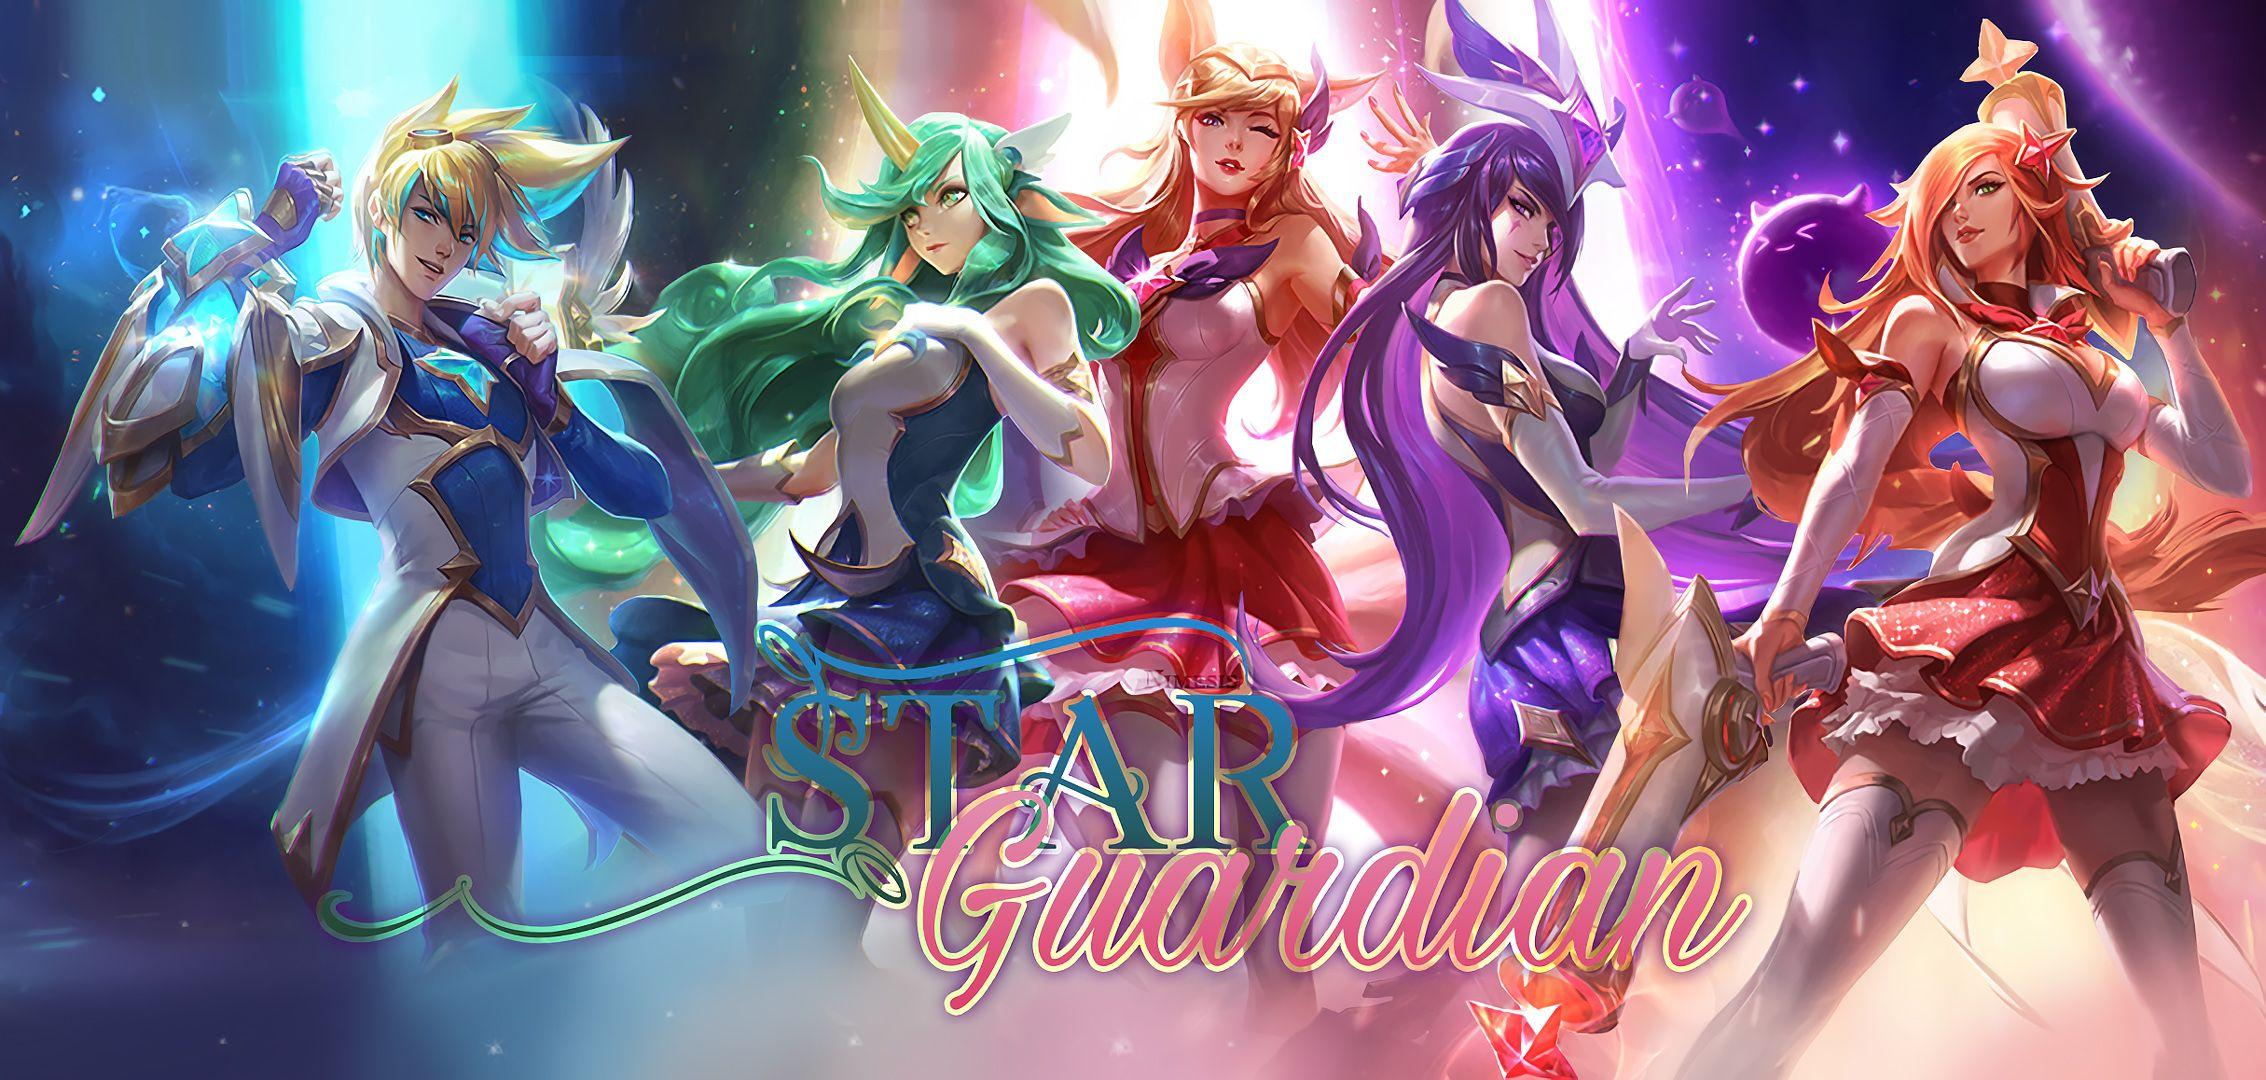 Star Guardian Wallpapers Wallpaper Cave